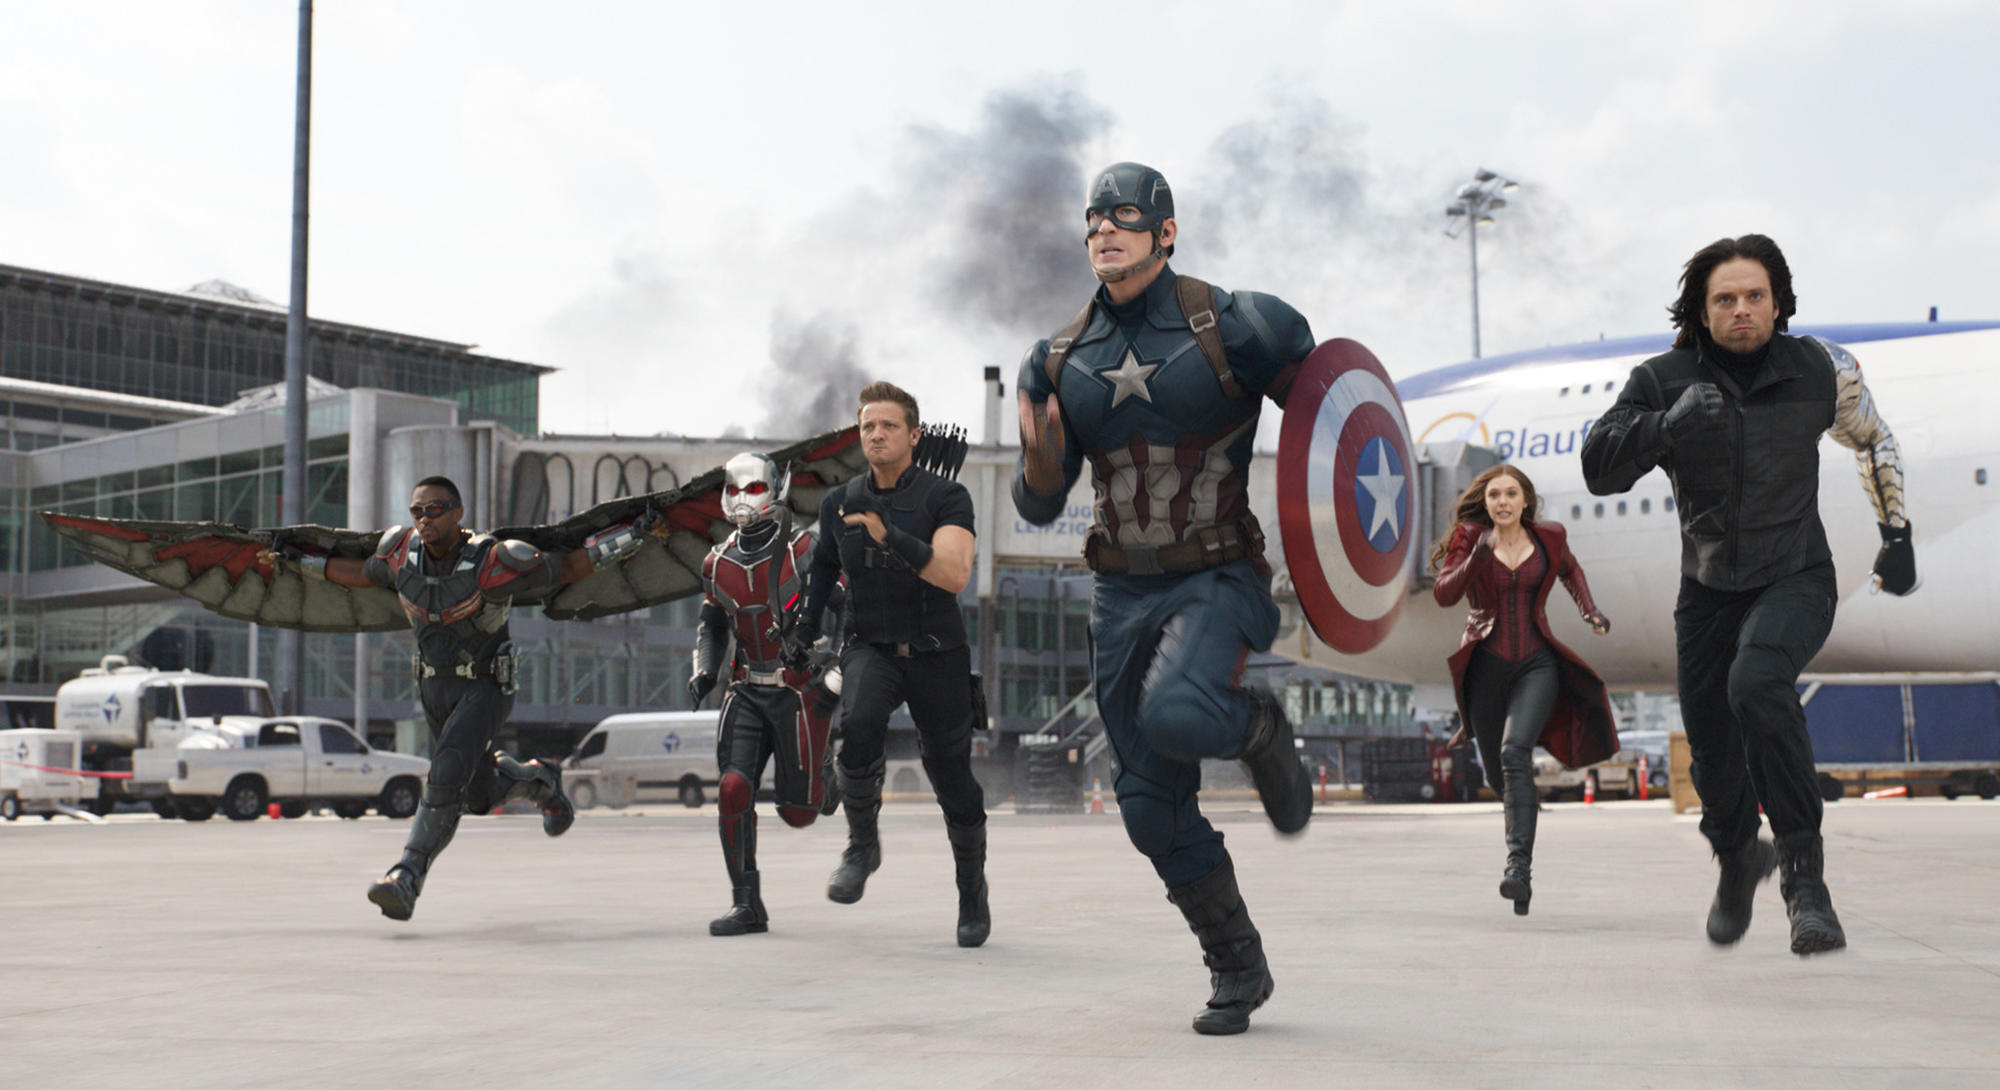 'Captain America: Civil War,' minus the explosions, an ensemble drama like 'The Good Wife'?